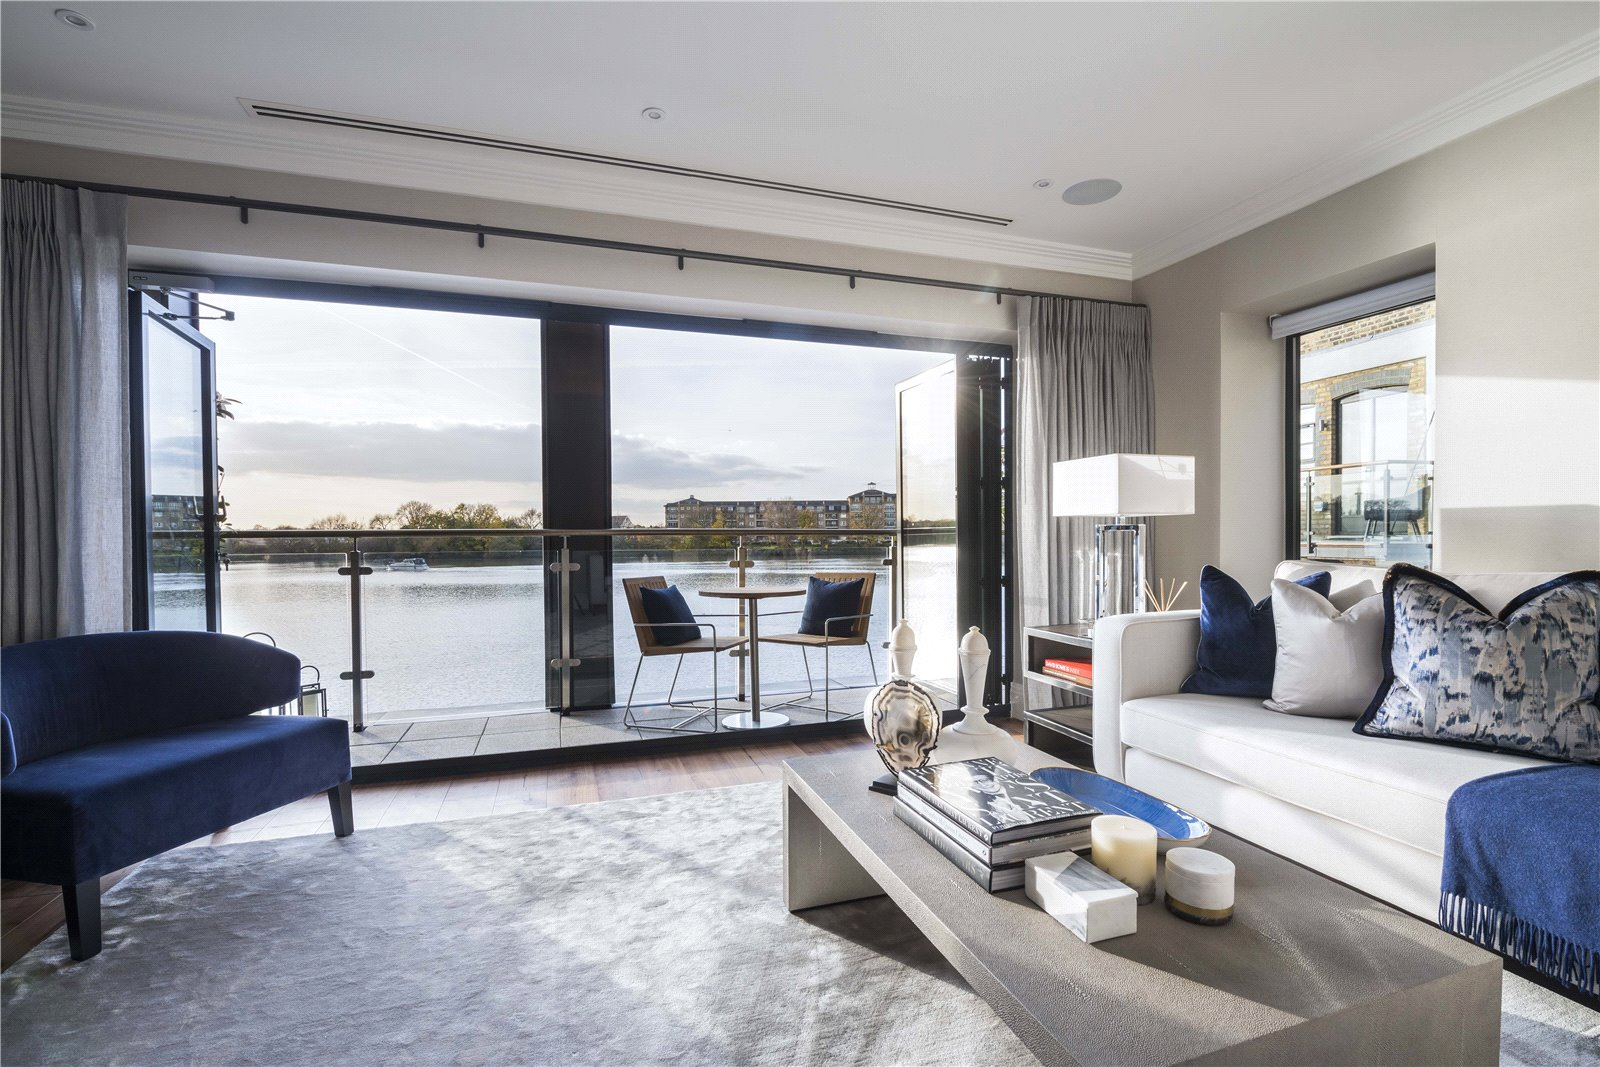 House for Sale at Palace Wharf, Rainville Road, Fulham, London, W6 Palace Wharf, Rainville Road, Fulham, London, W6